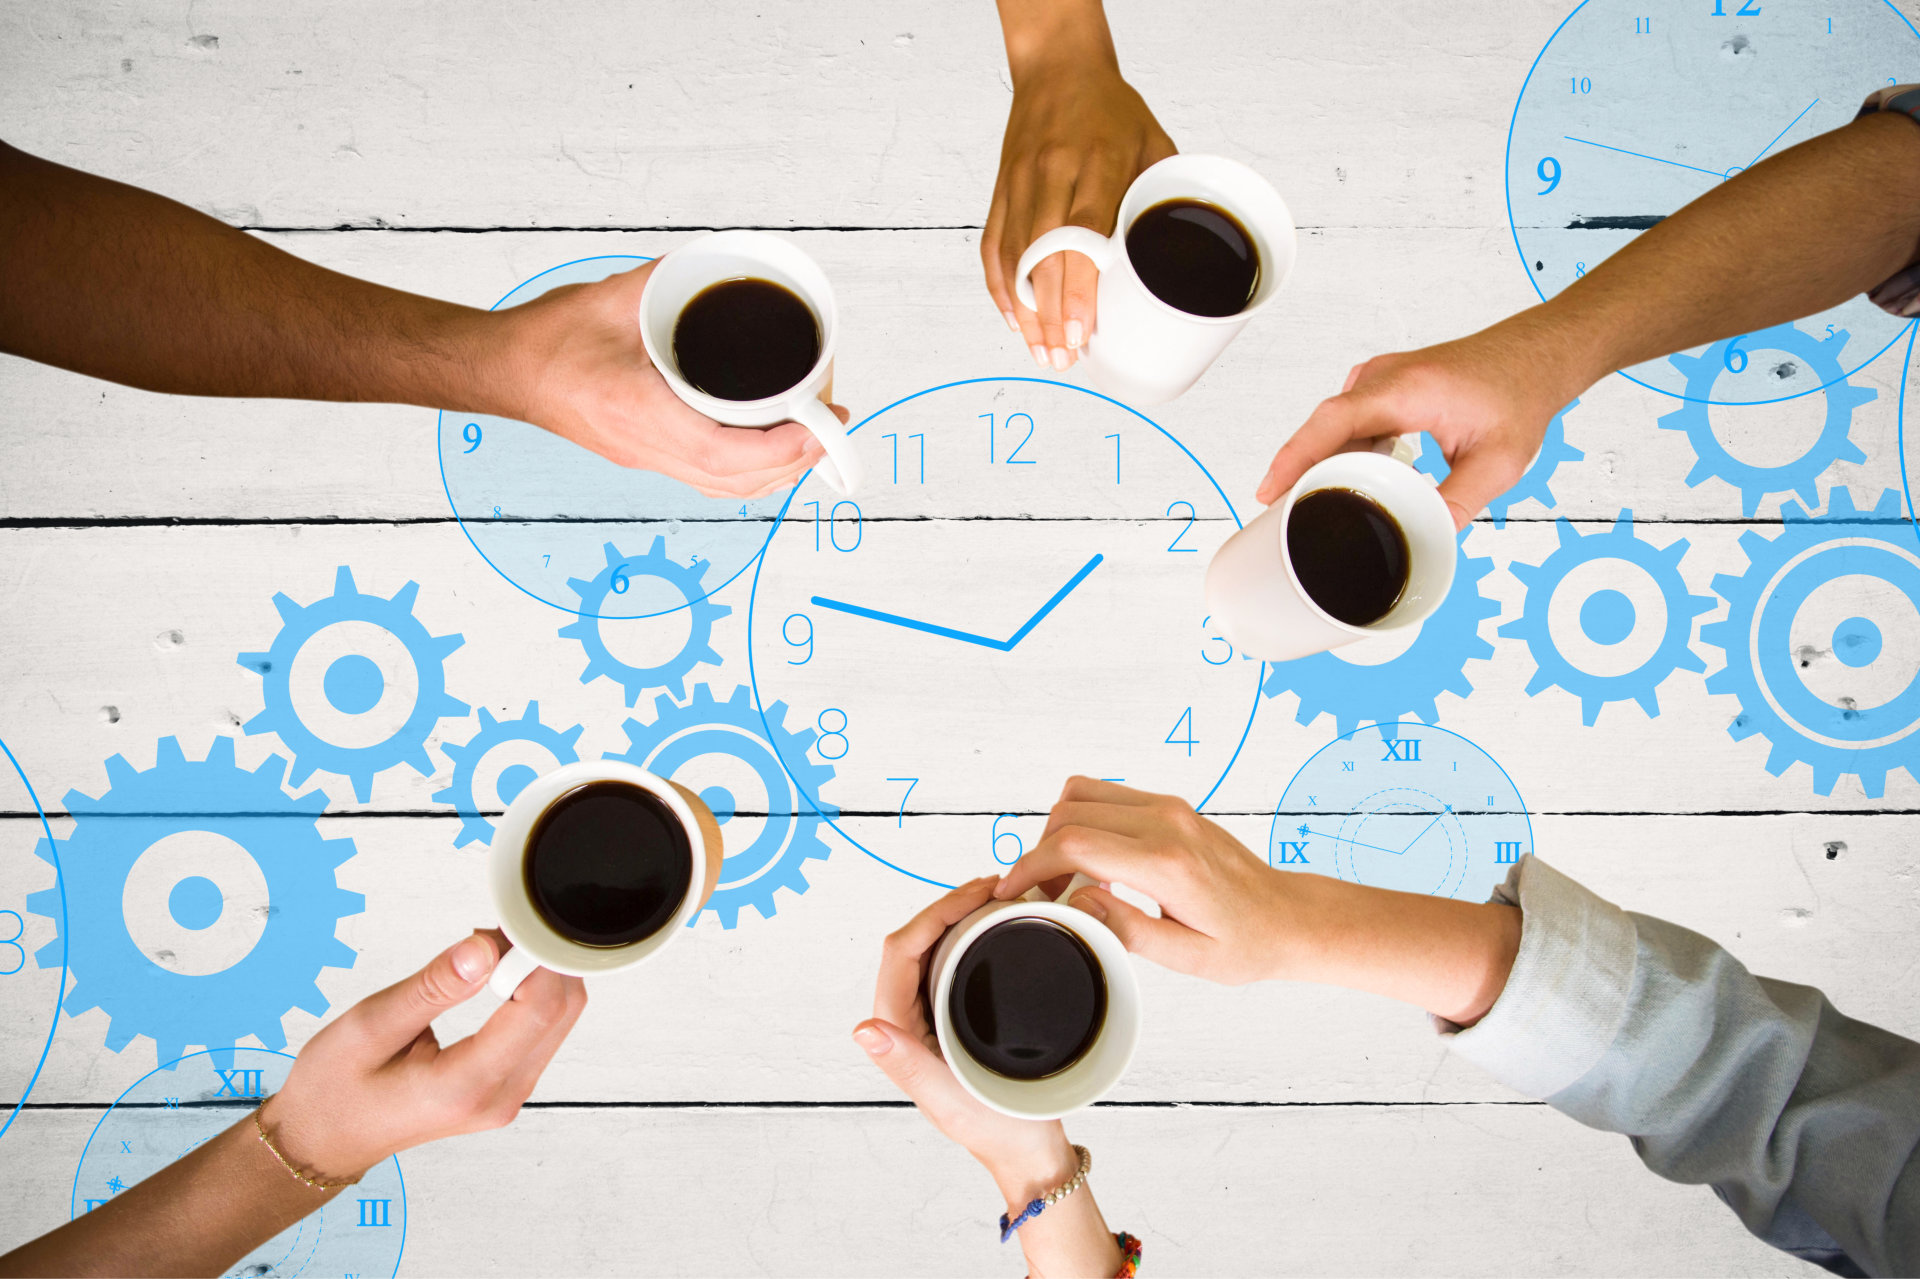 Hands reaching for coffee over clock graphic in blue